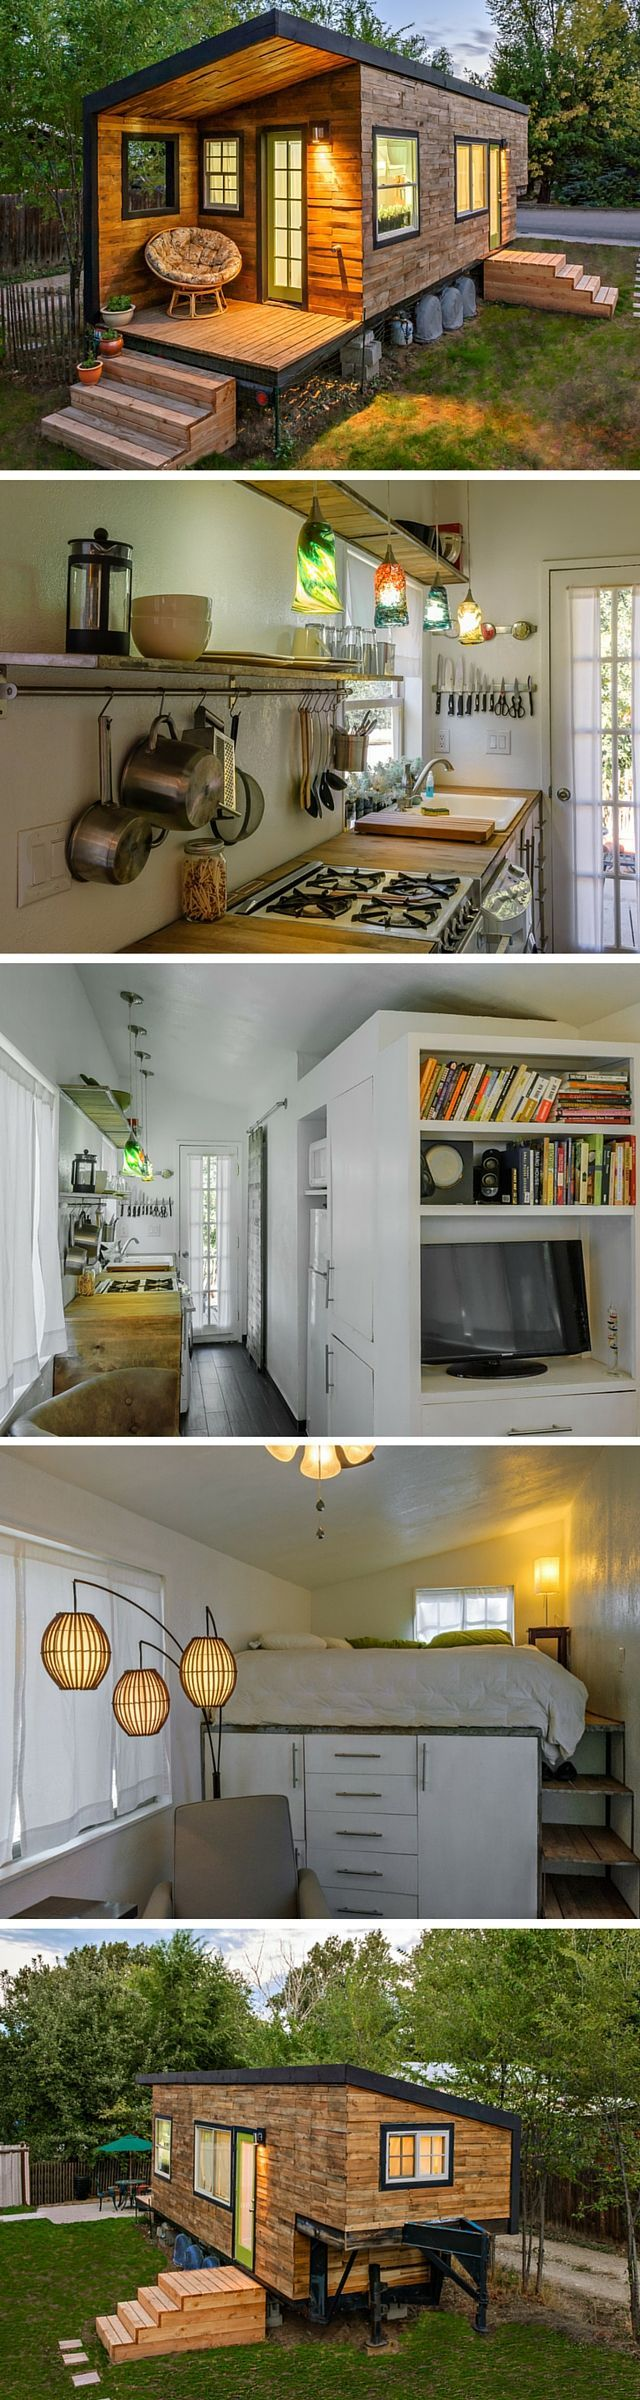 100+ Adorbs Tiny Homes - #Adorbs #exterior #Homes #Tiny #tinyhome